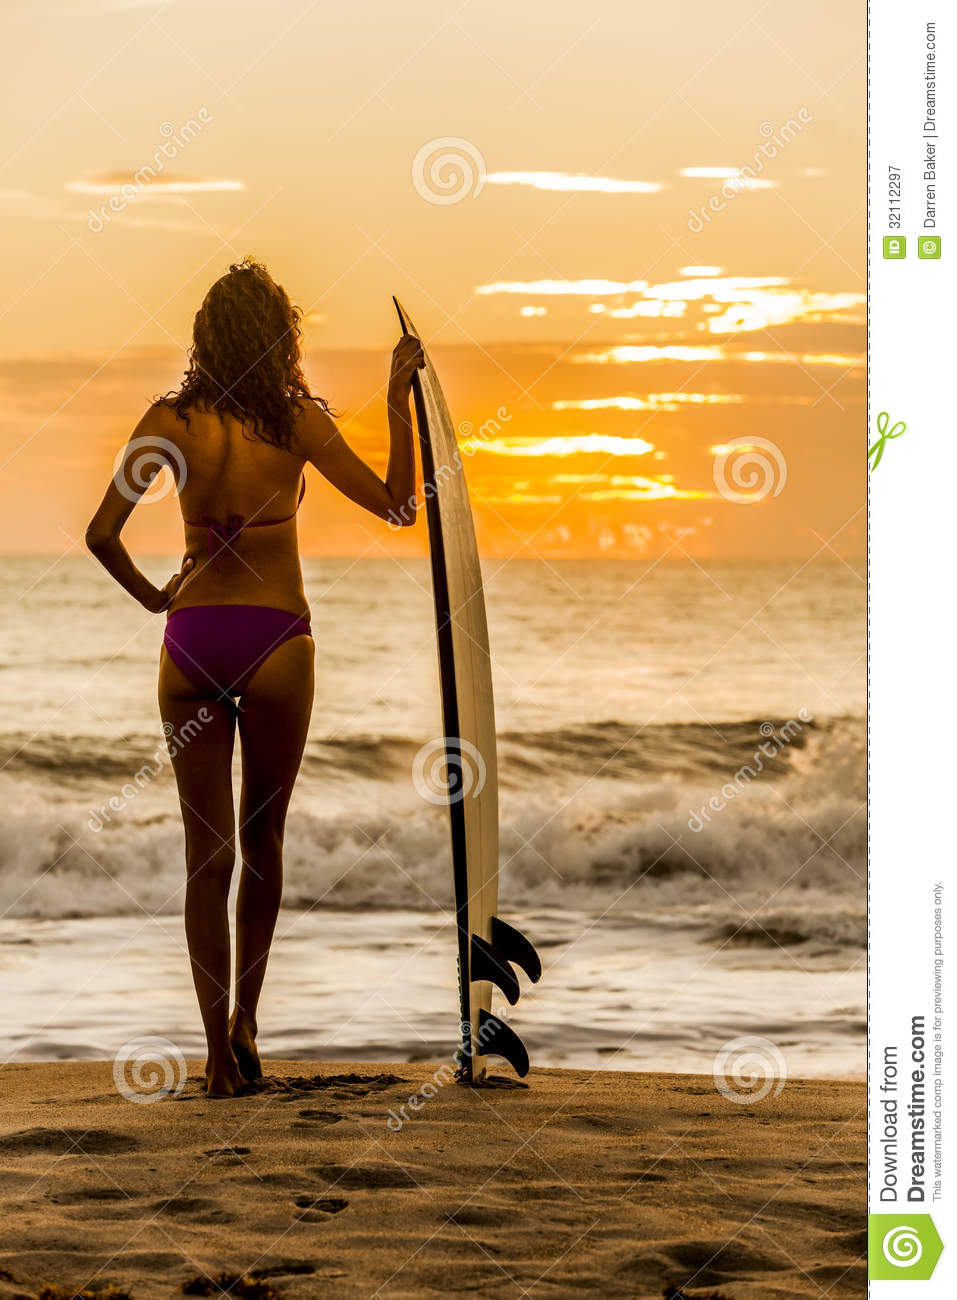 Recommend you Bikini surf board recommend